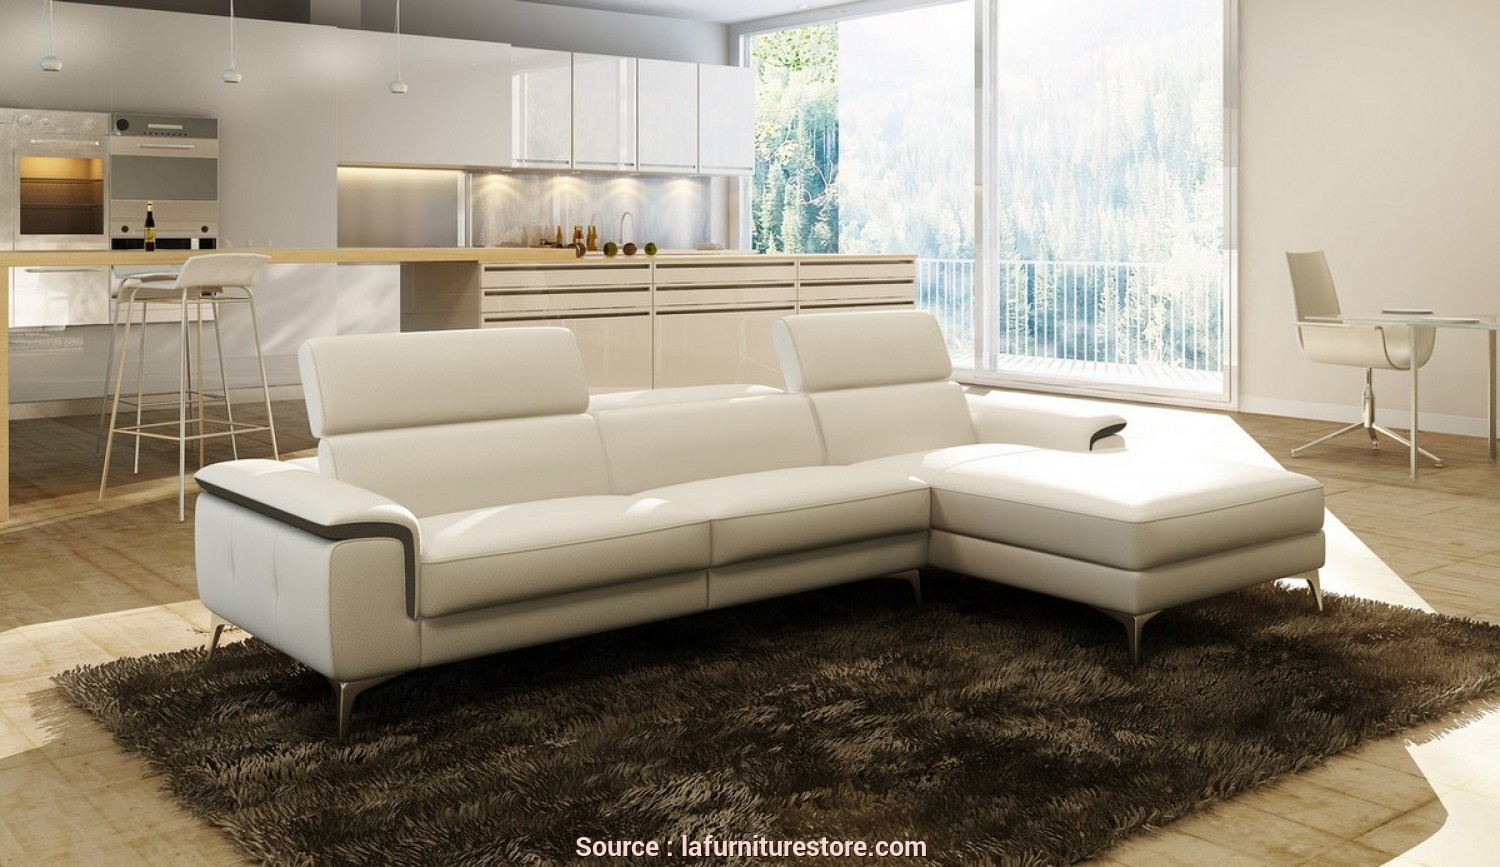 Divano Sofa Italia, Fantasia Divani Casa 990A Modern White, Grey Italian Leather Sectional Sofa